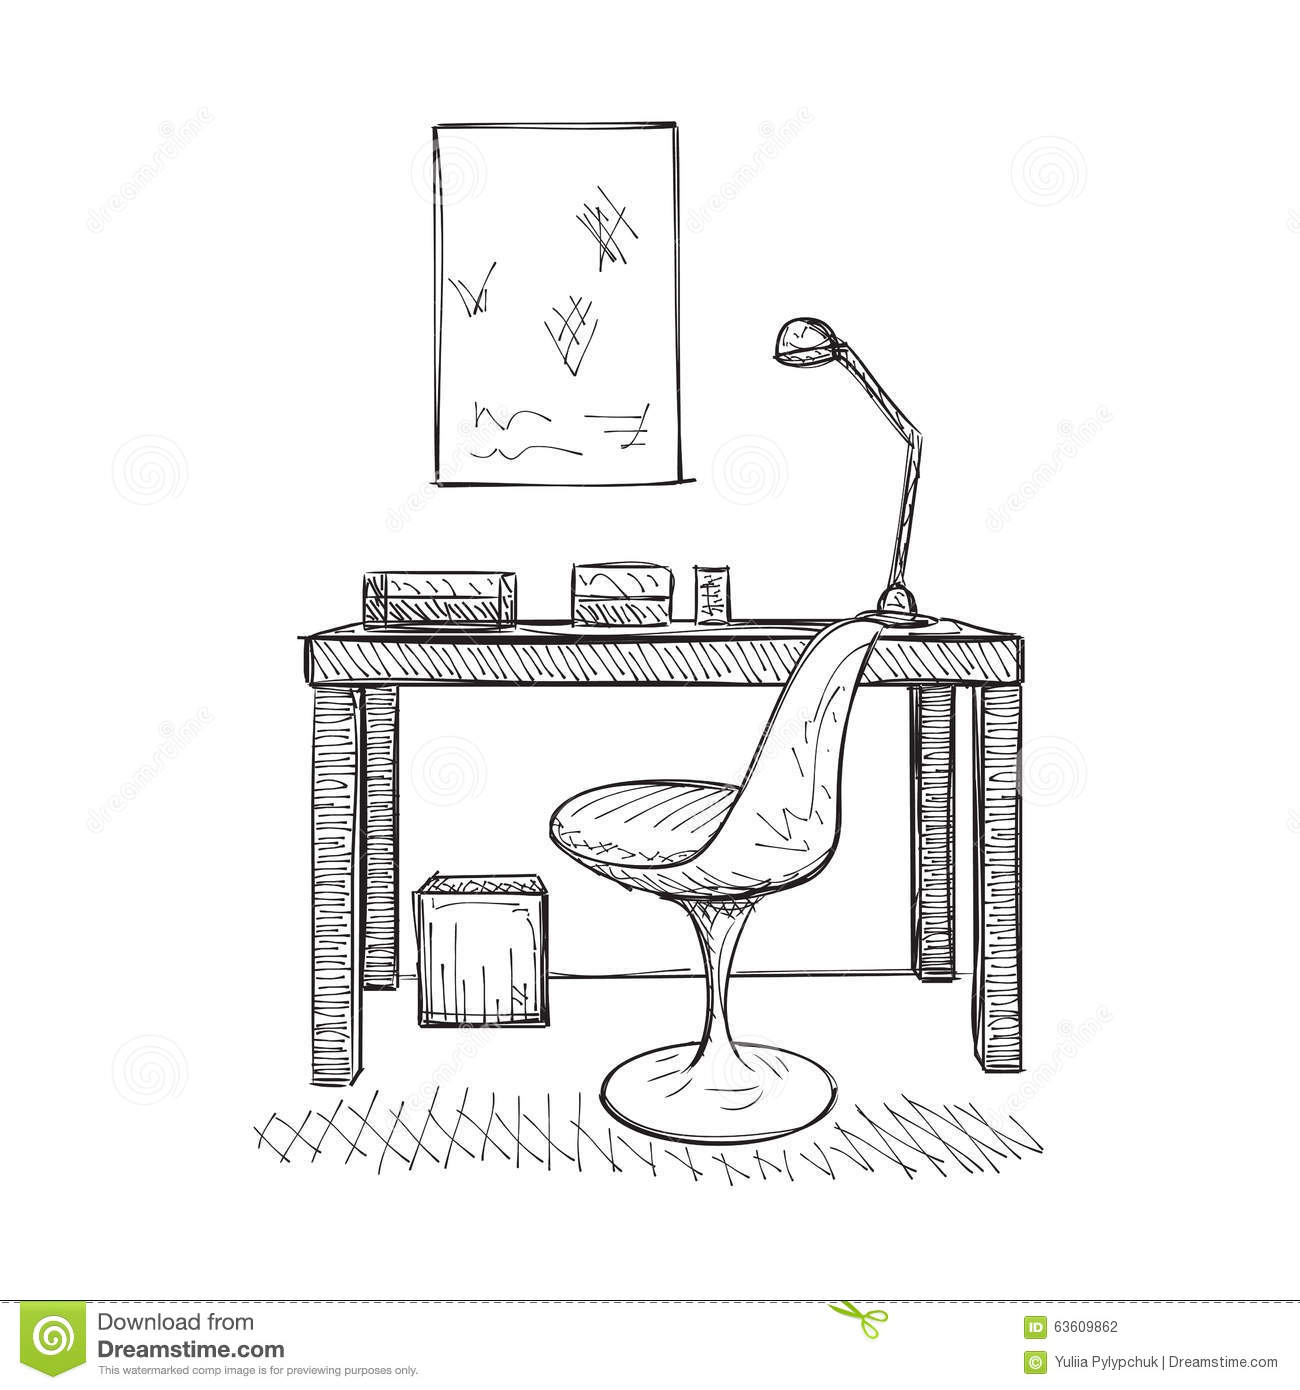 Hand drawn workplace stock vector. Illustration of hand